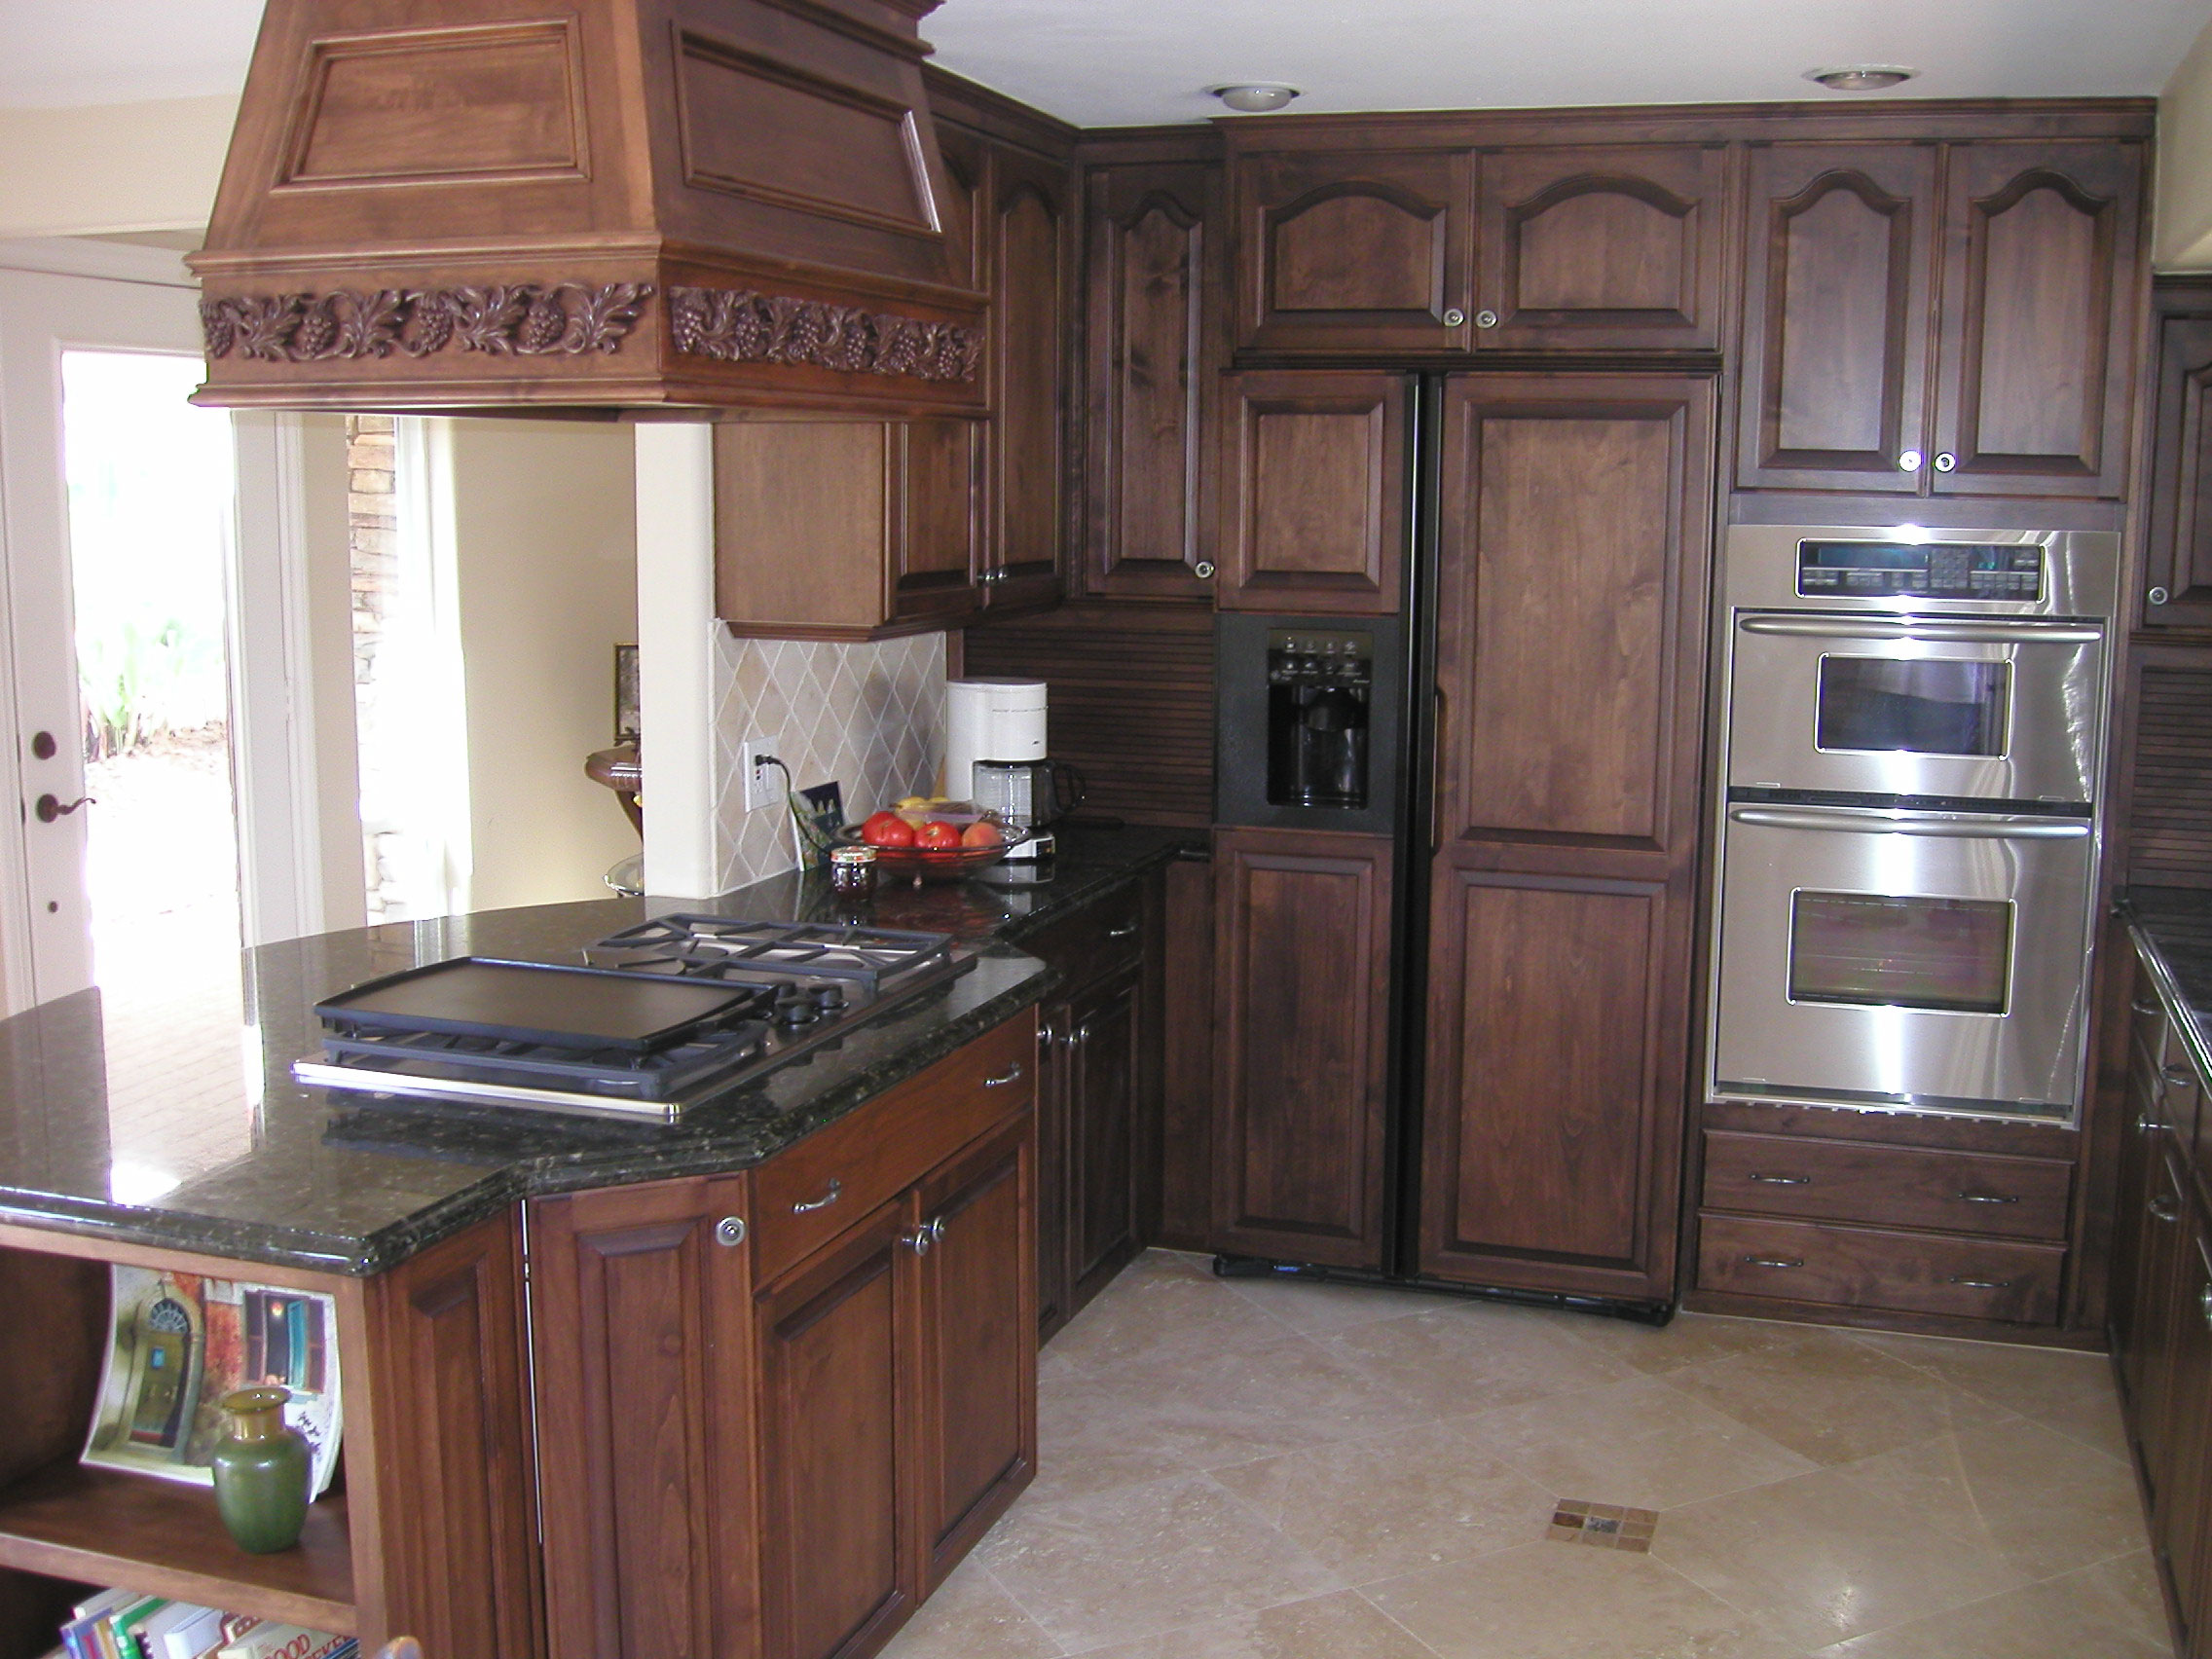 Painting Kitchen Cabinets Trends Second sun co